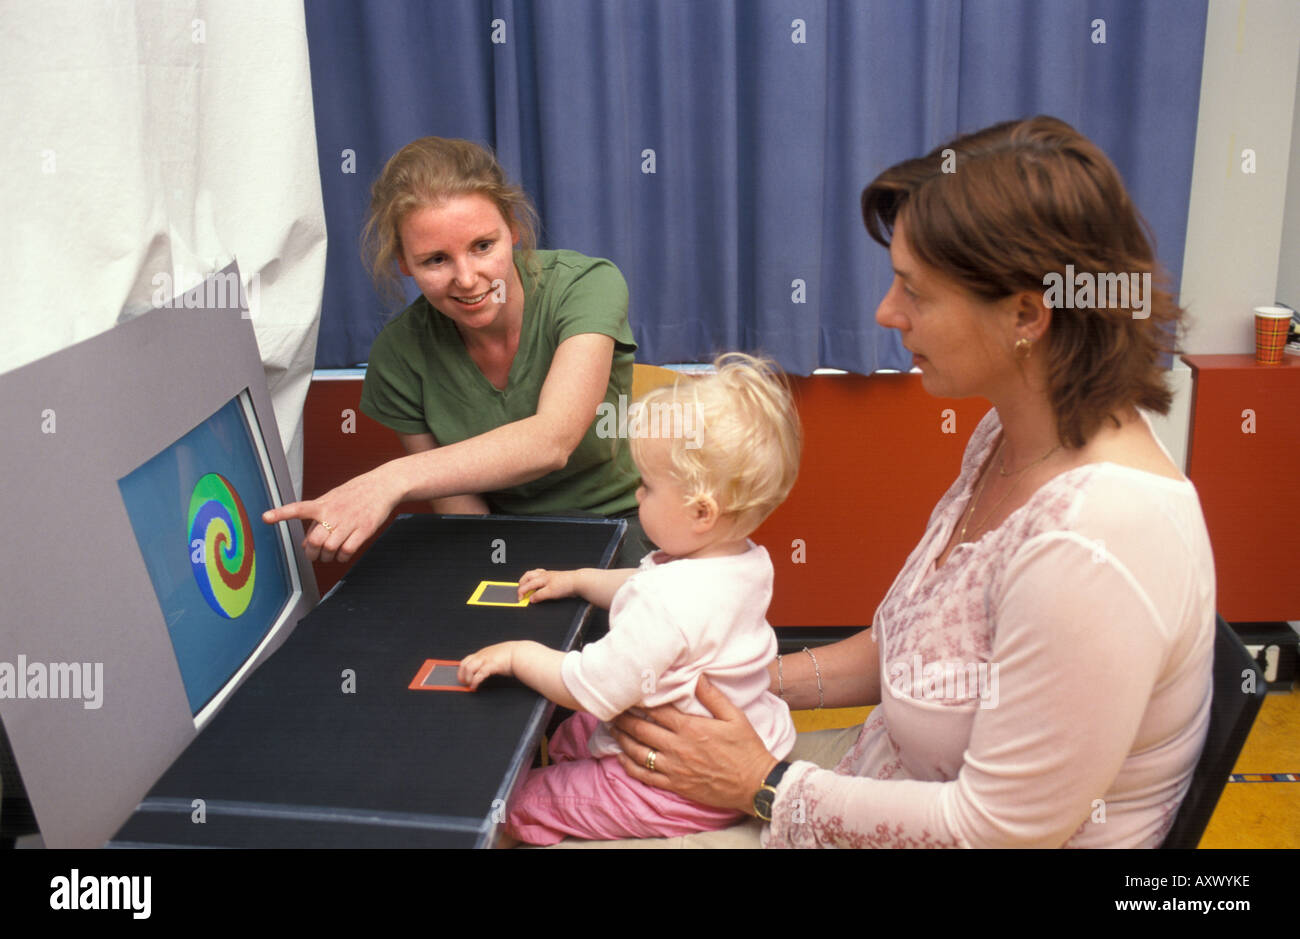 Child at a psychological test - Stock Image